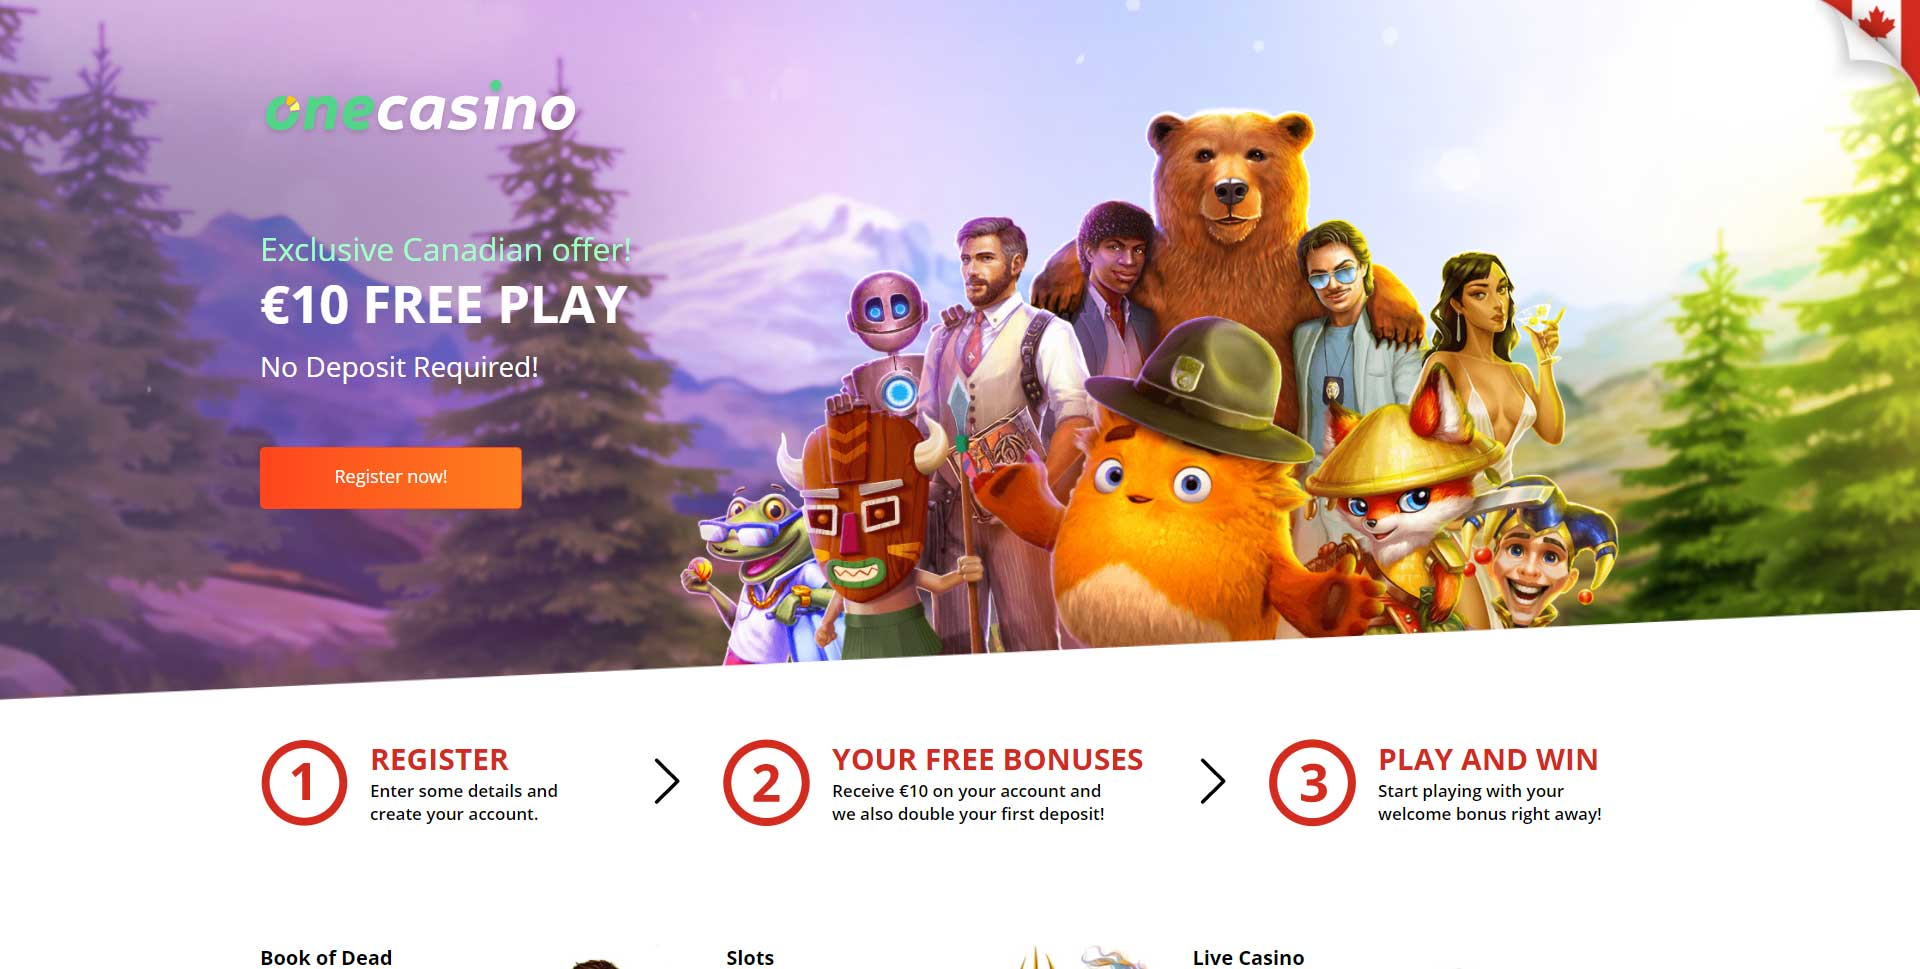 10 free play no deposit required at One Casino